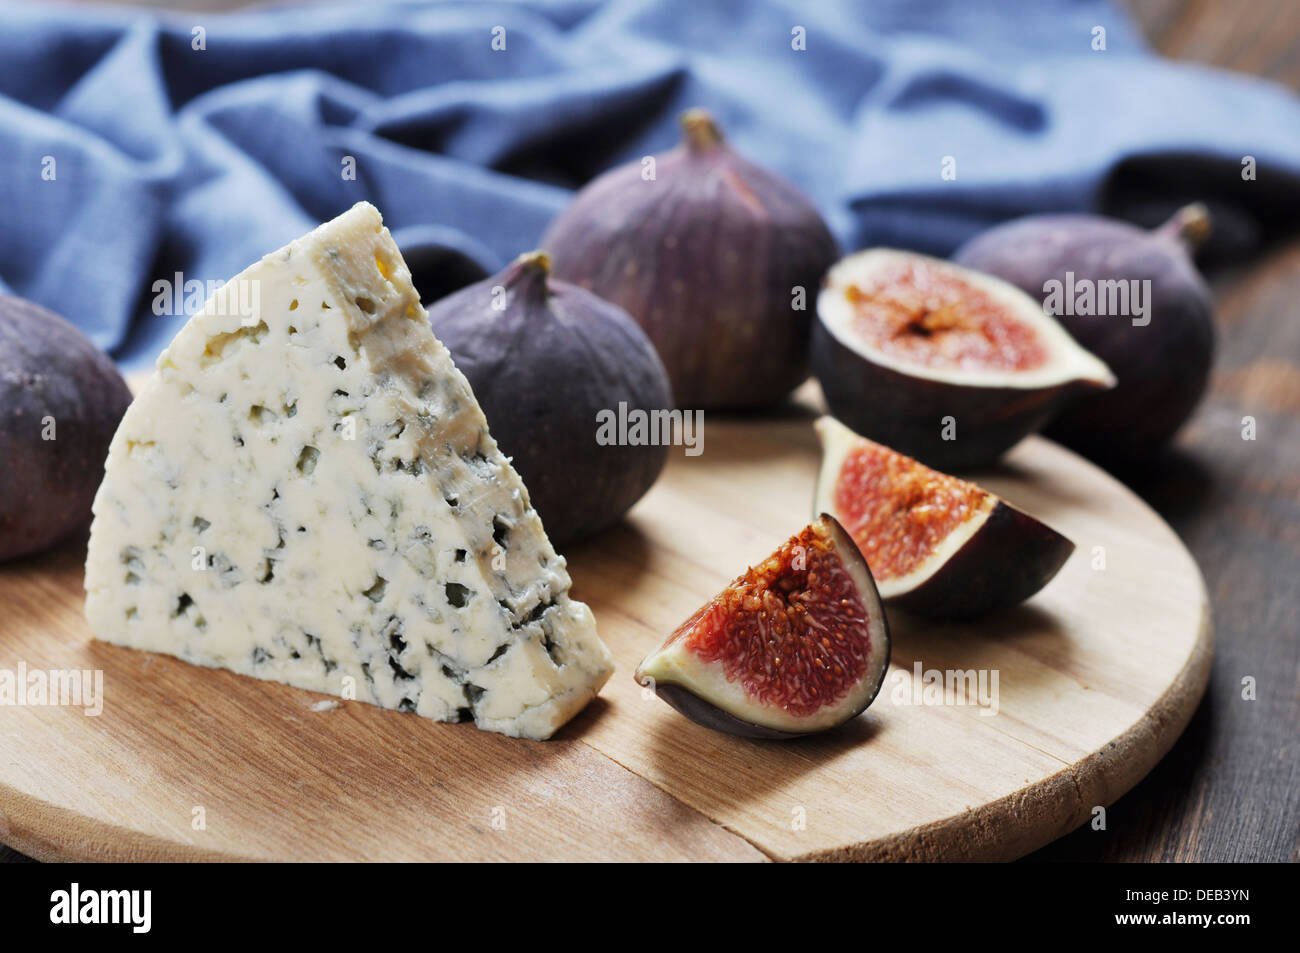 blue cheese and fresh figs fruit on a wooden cutting board - Stock Image